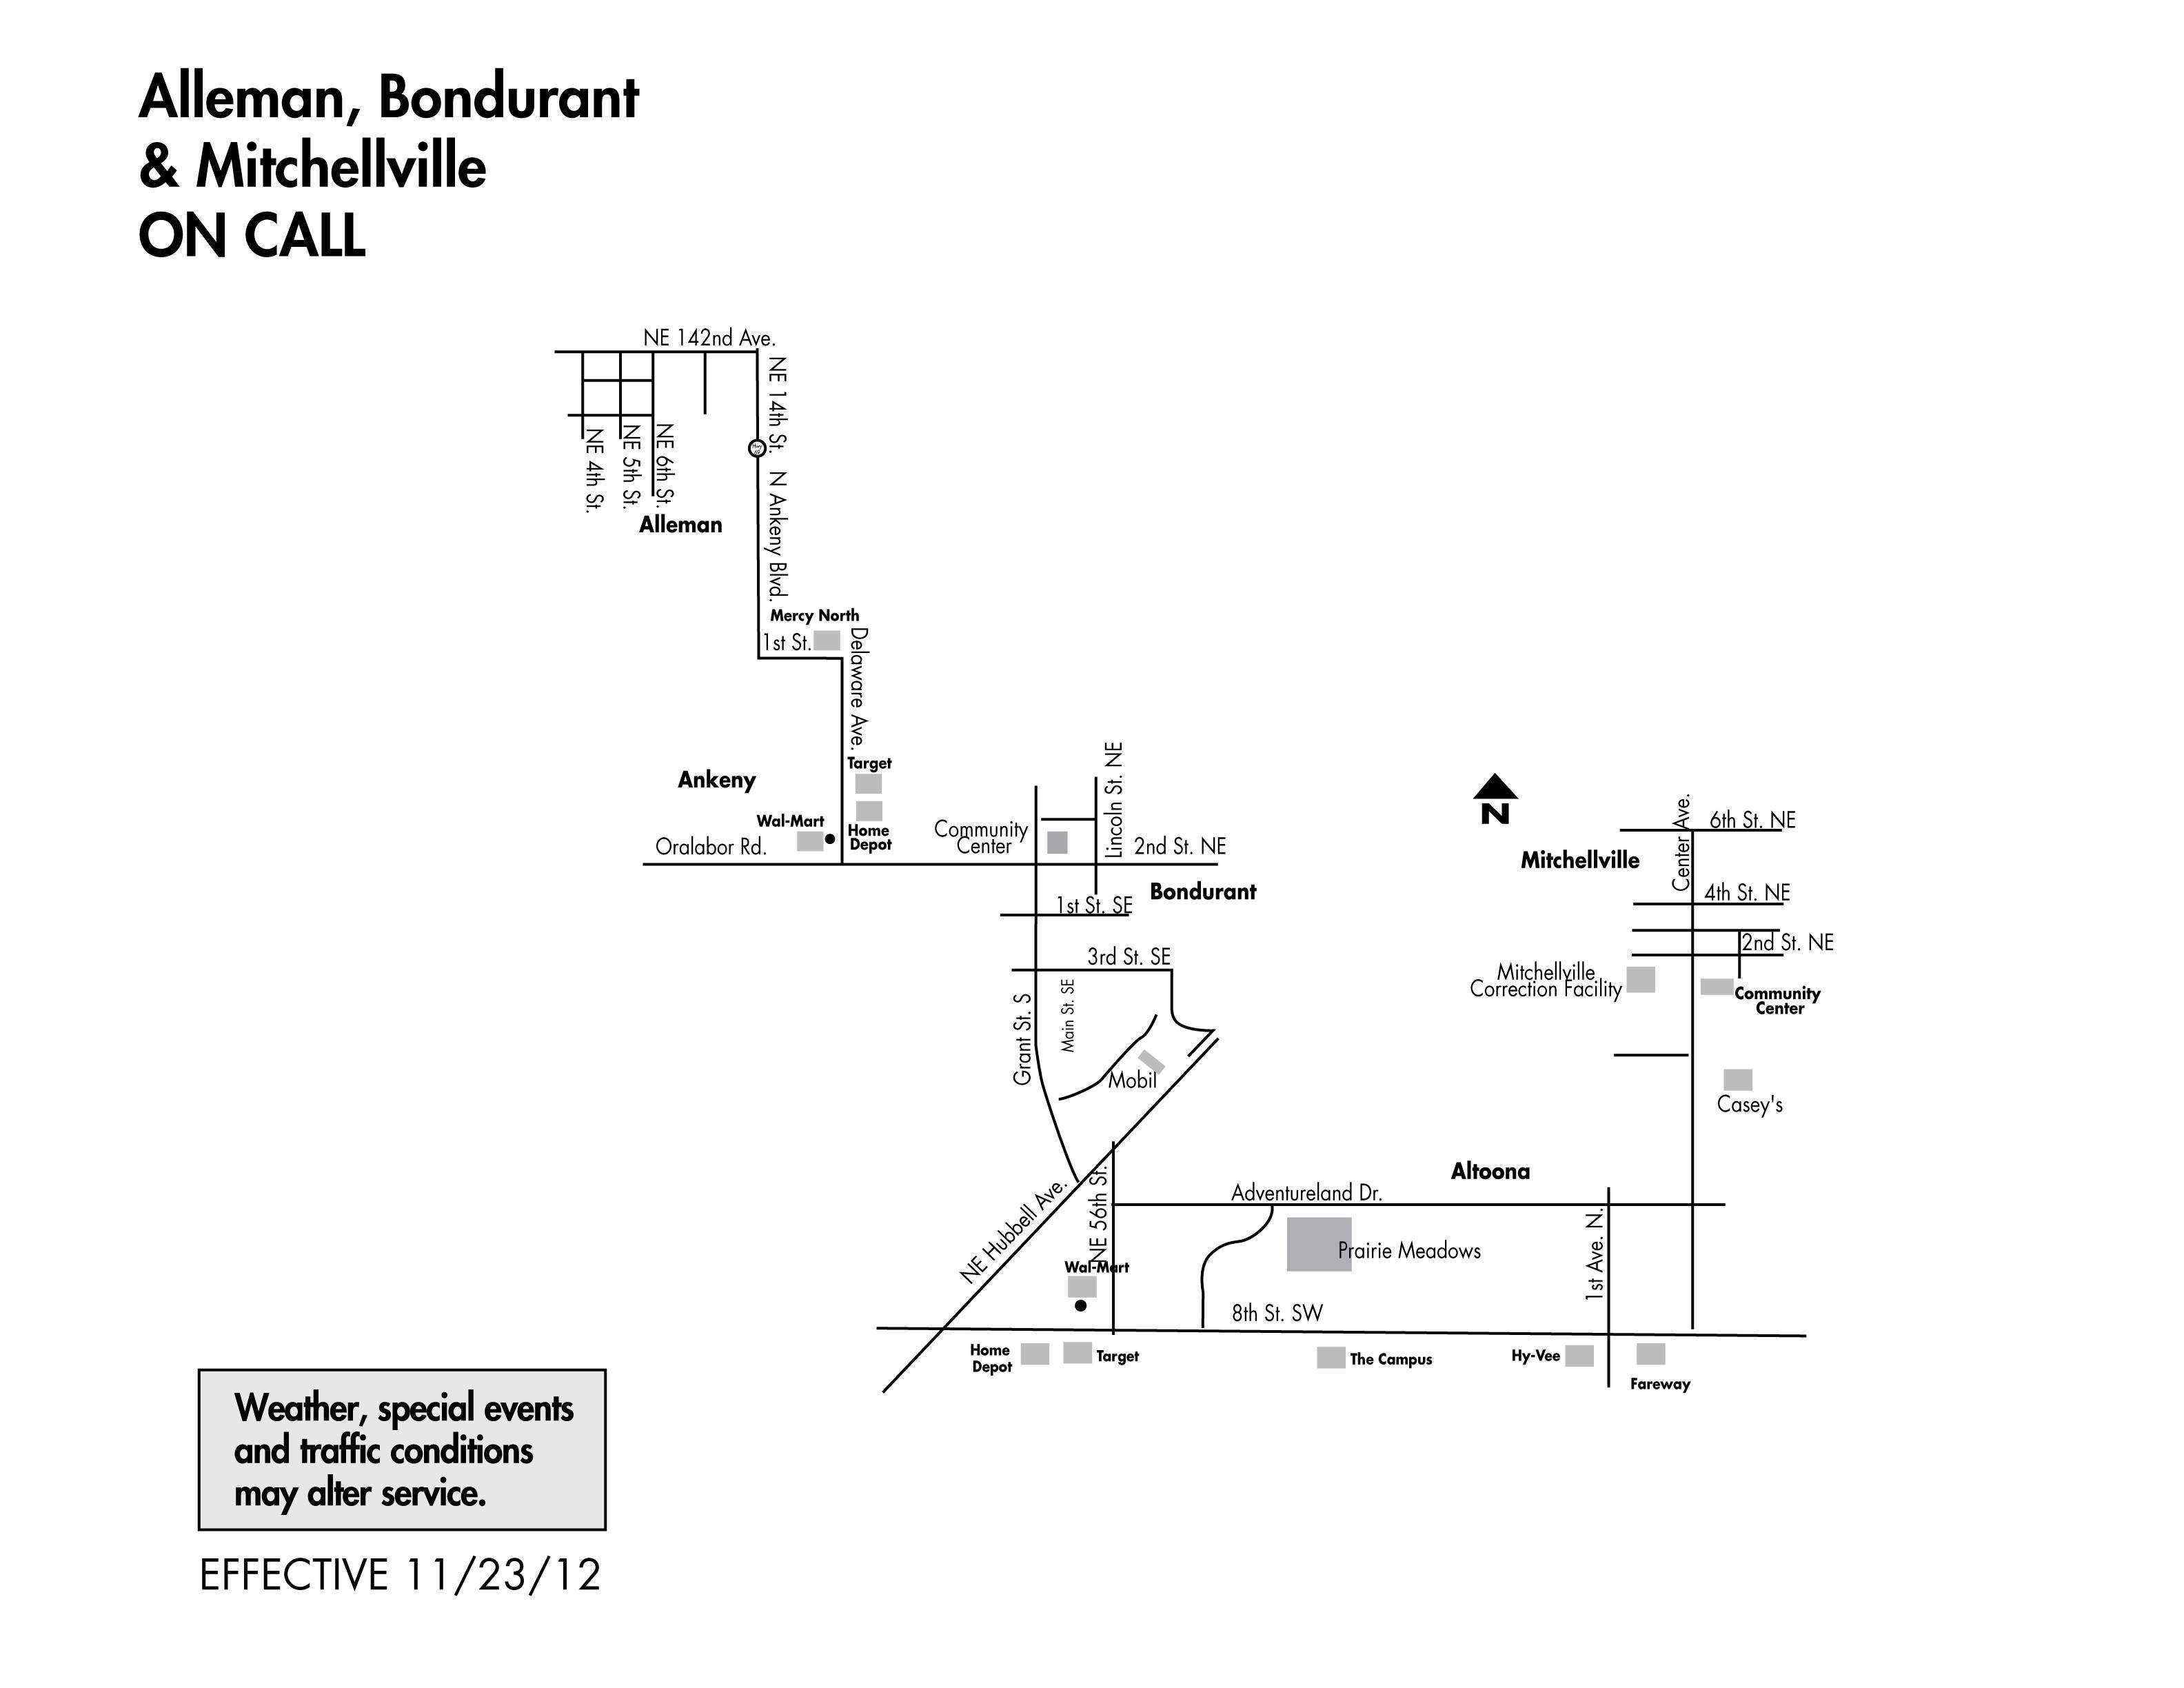 DART On Call Service - Alleman/Bondurant/Mitchellville Map